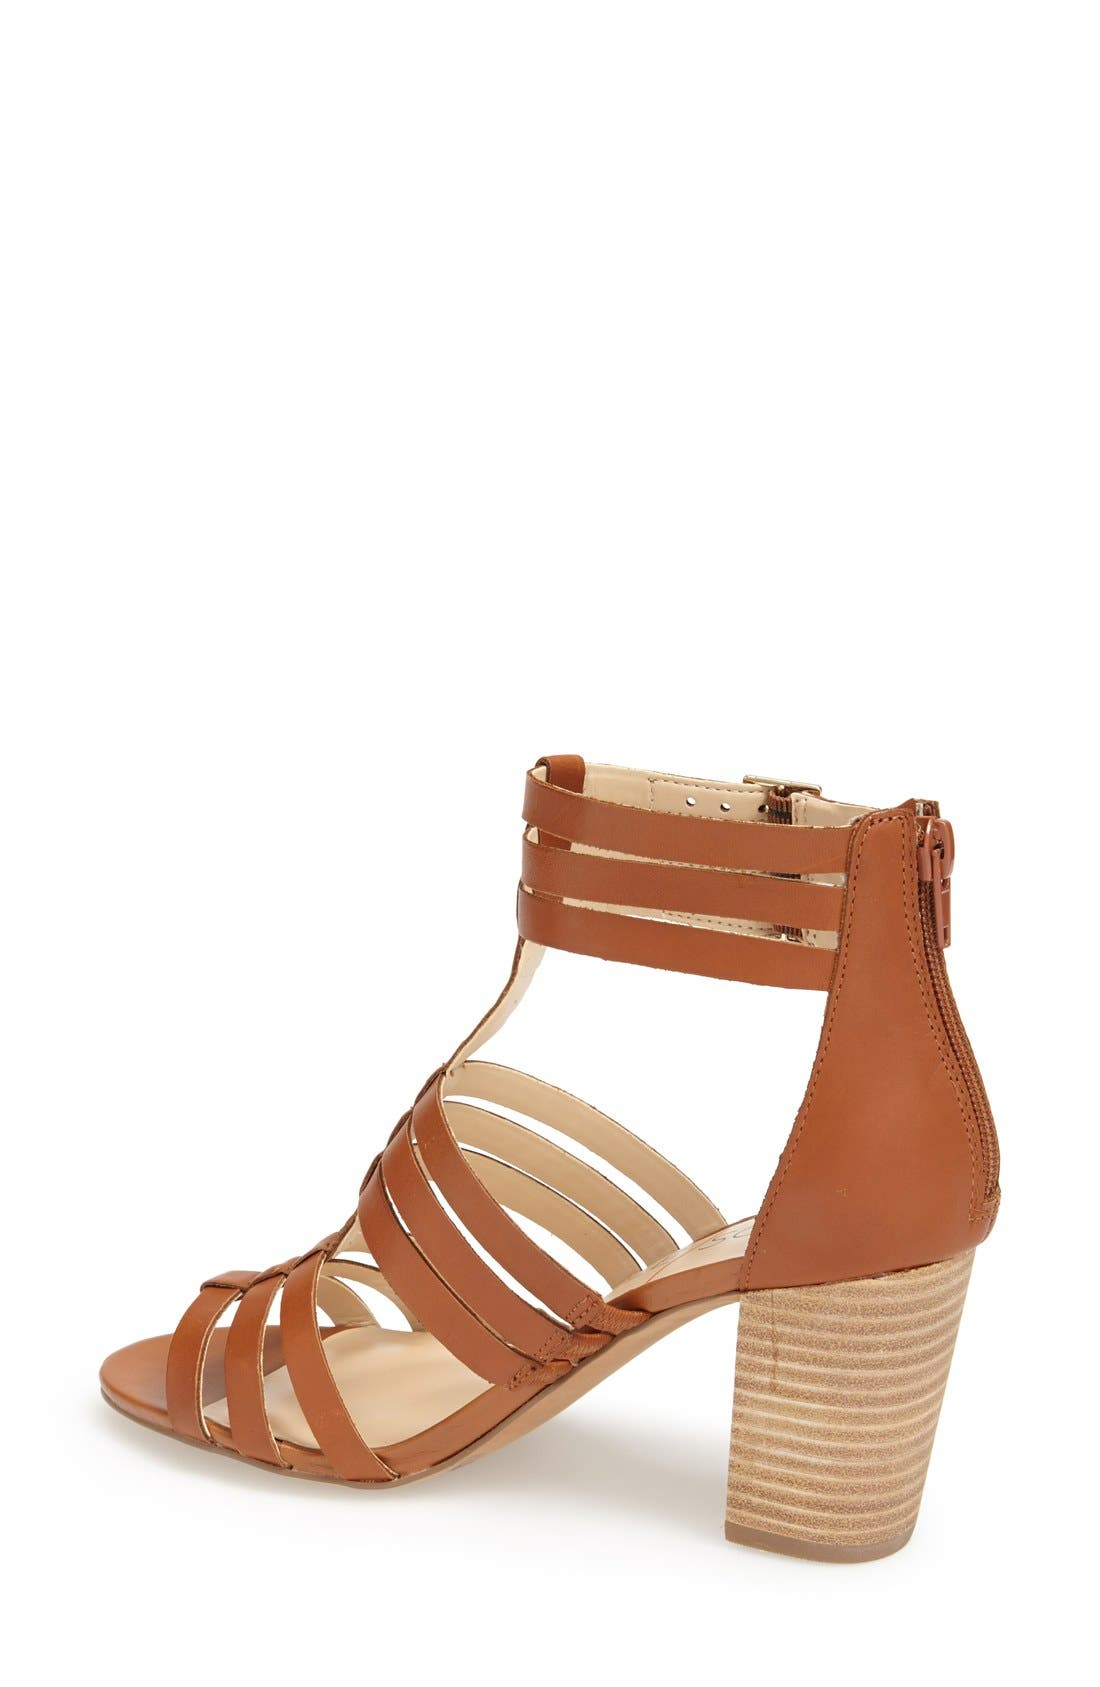 Alternate Image 2  - Sole Society 'Elise' Gladiator Sandal (Women)